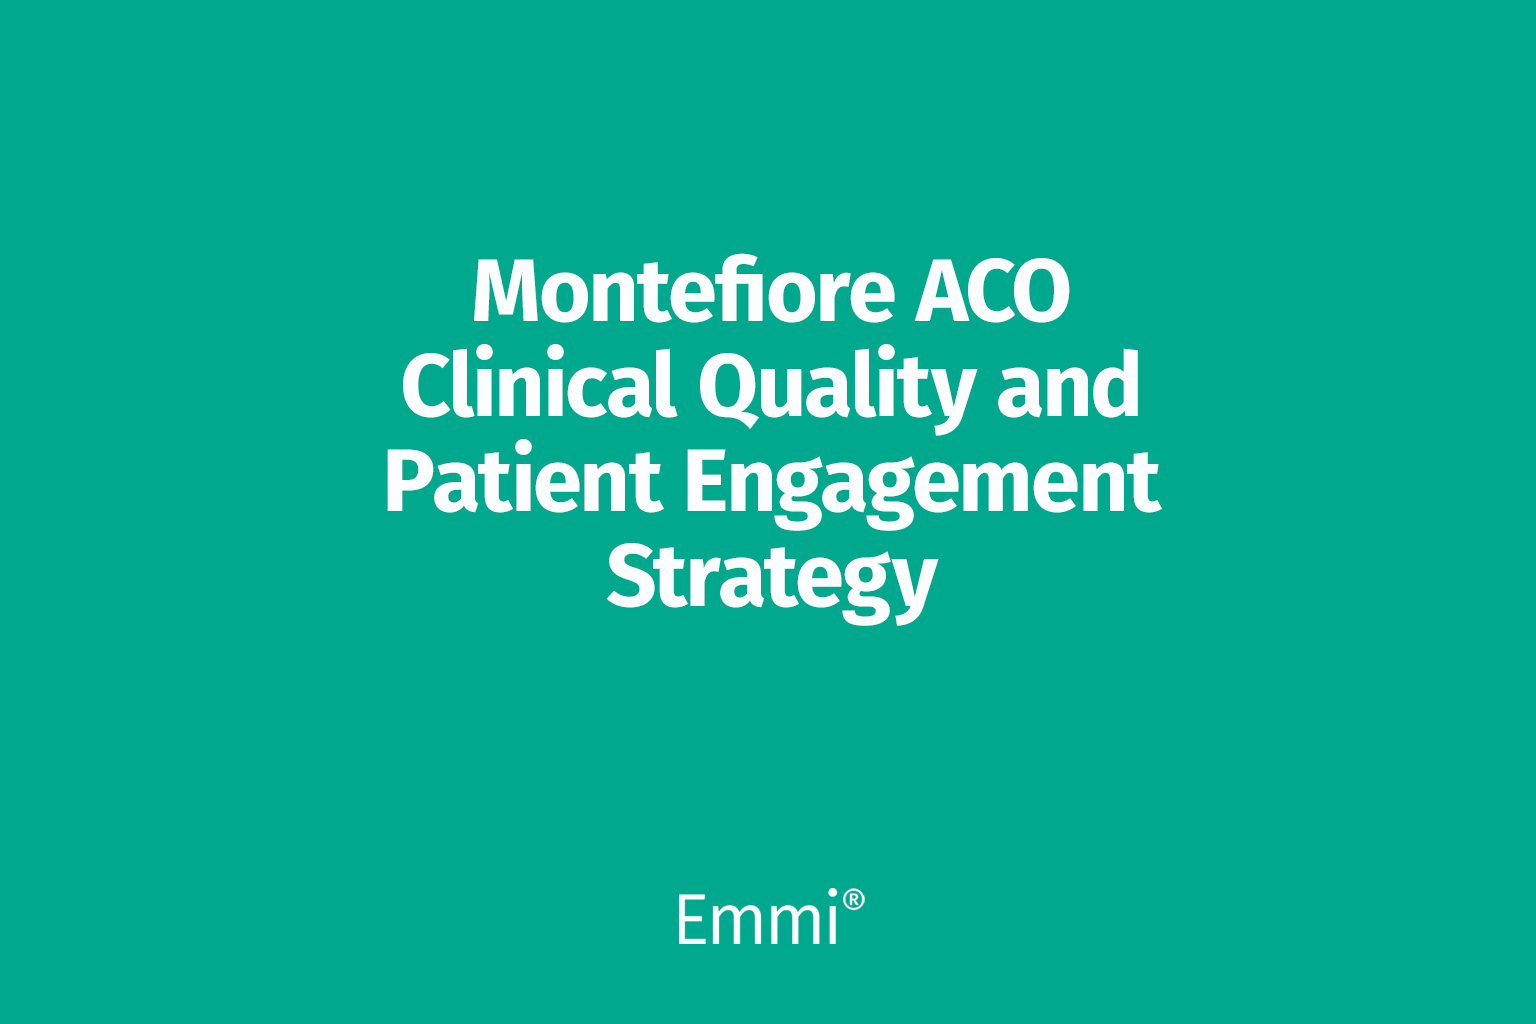 Montefiore embraces Emmi programs as the foundation of its population health strategy